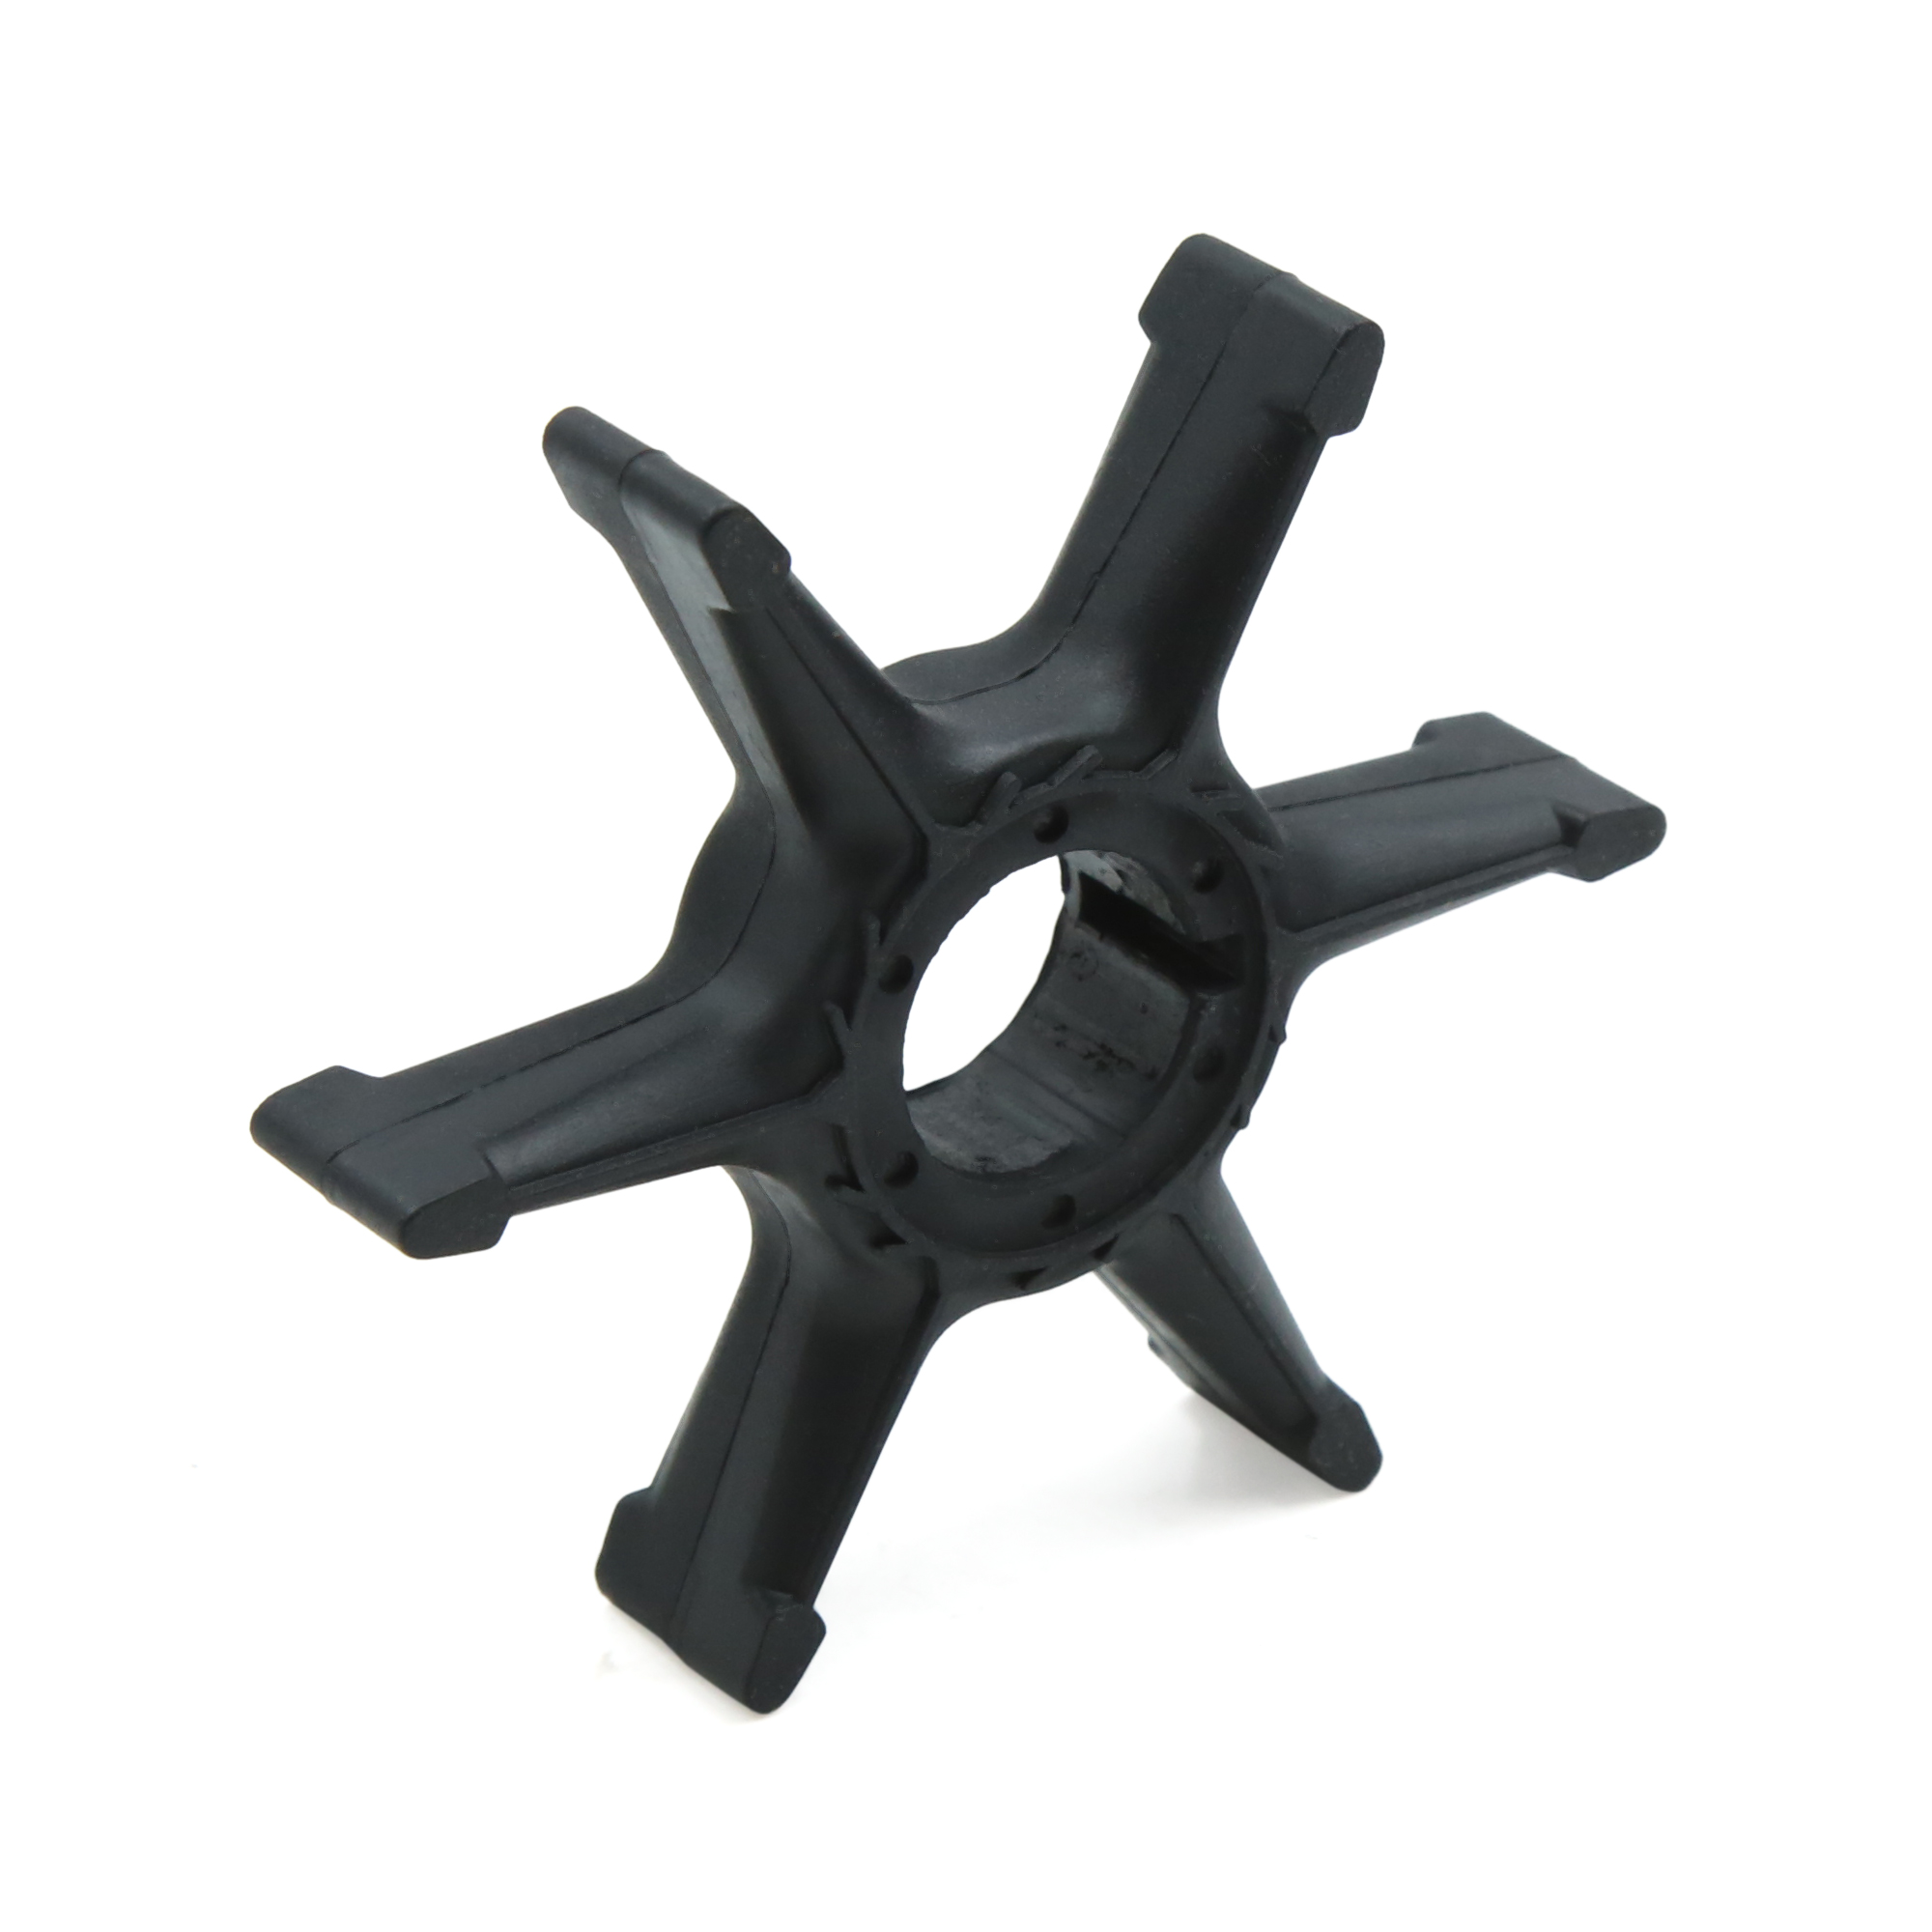 Mariner 30hp 689 Outboard Engine Water Pump Impeller Replaces 47-84797M